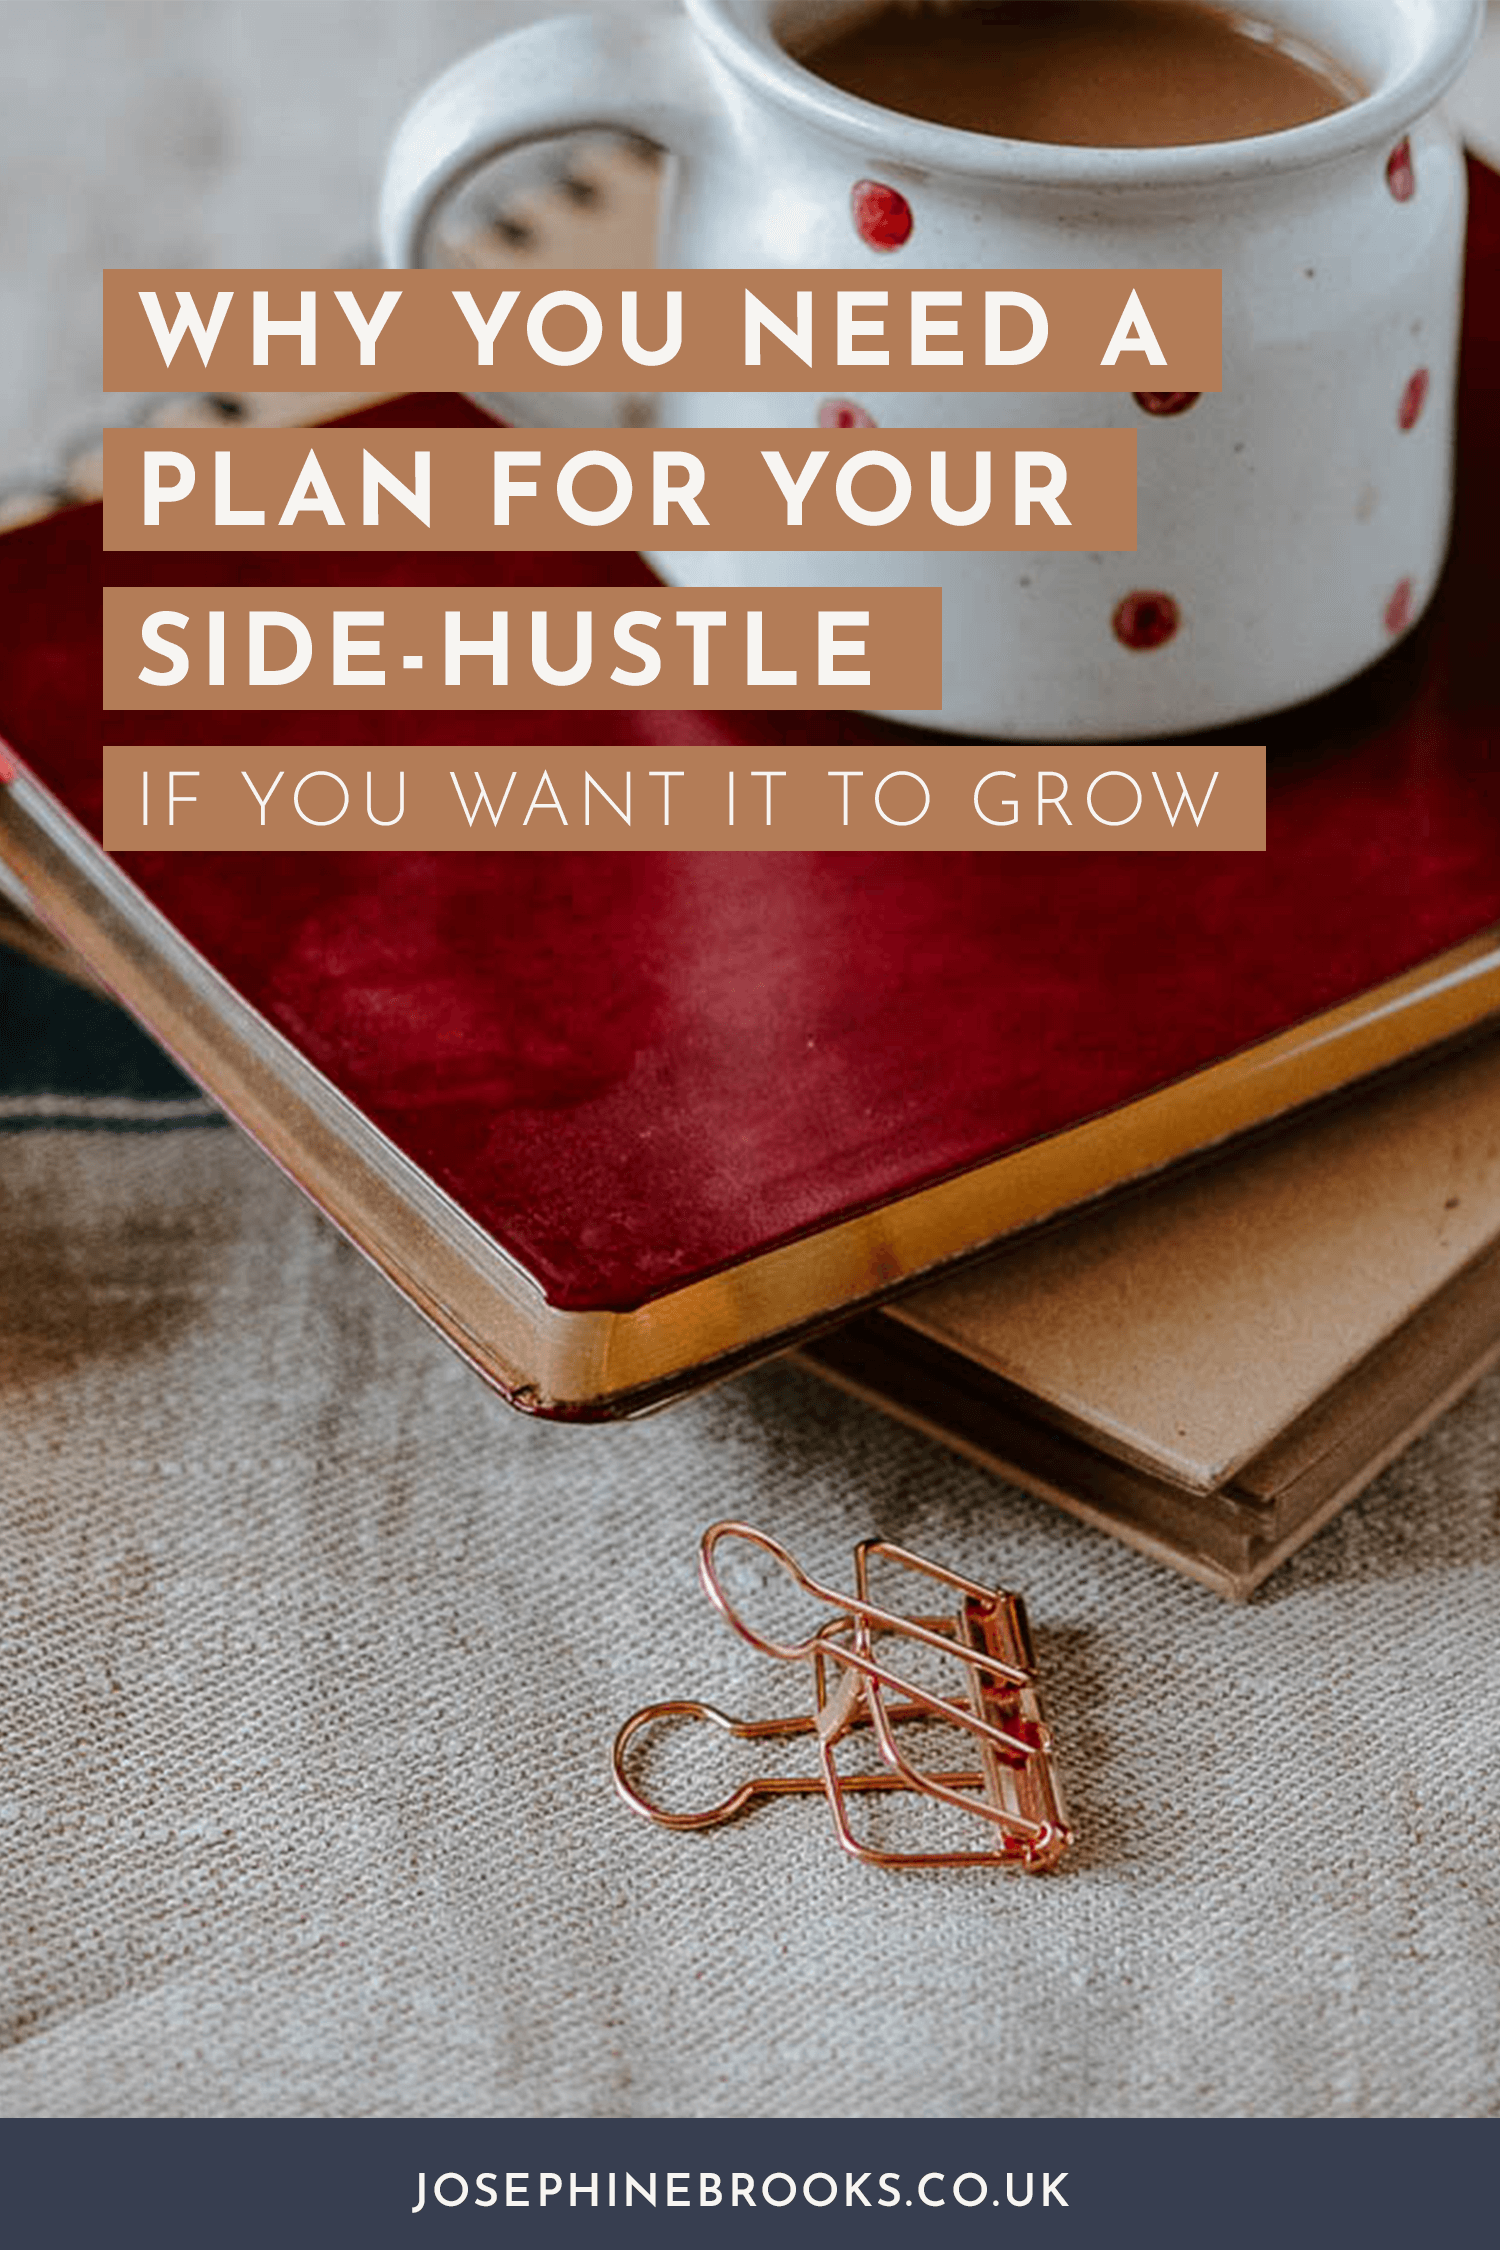 Why you need a plan for your side-hustle if you want it to grow | Josephine Brooks